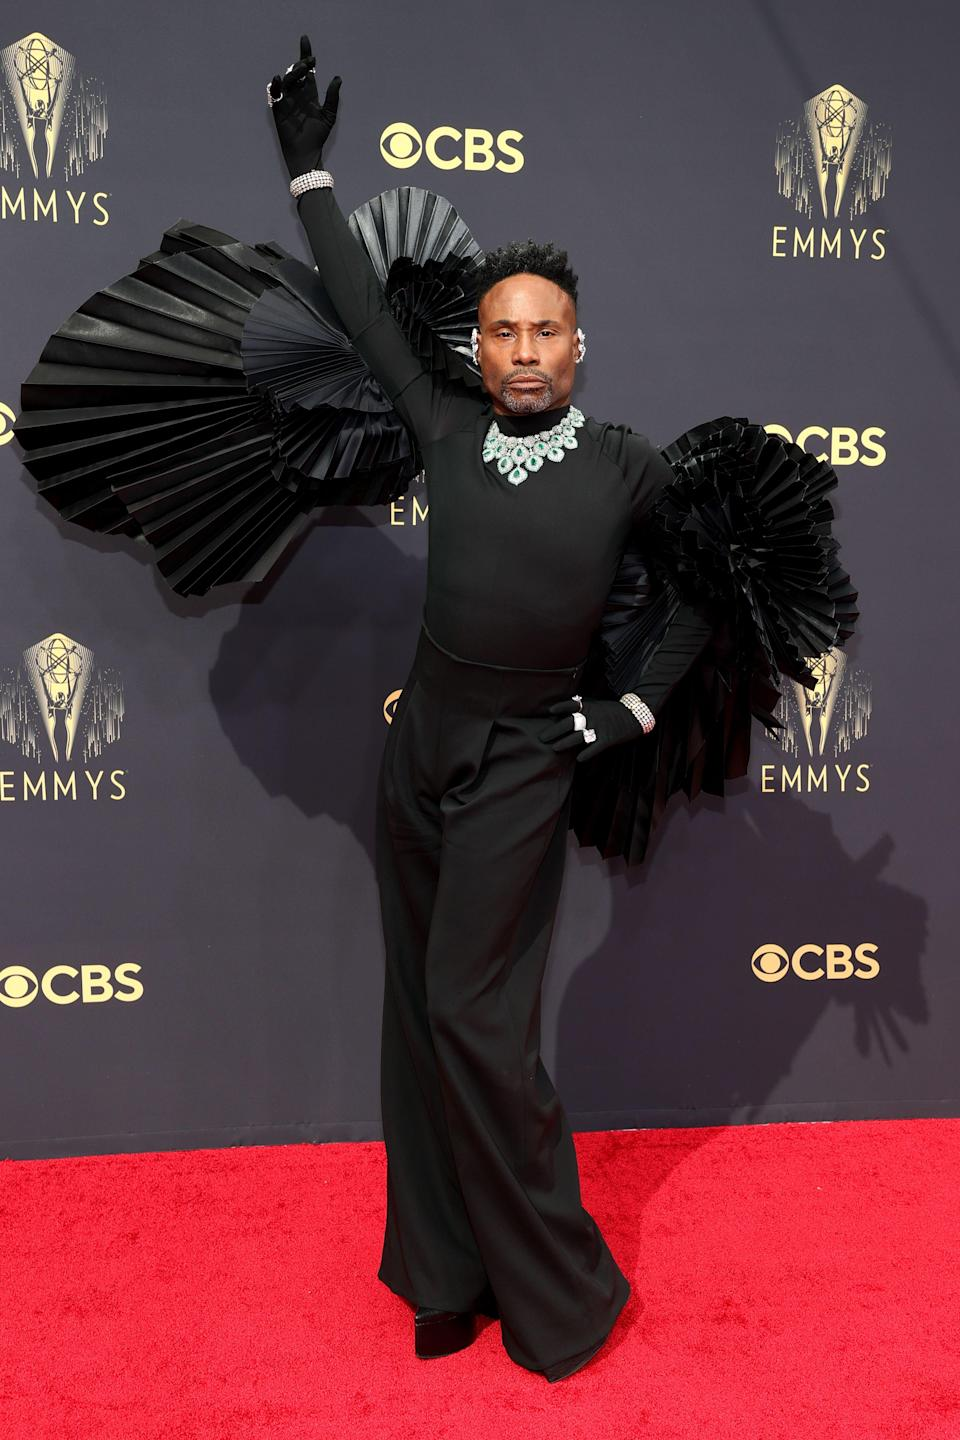 <p>Television's biggest night has come yet again, and this time it's returning to an in-person ceremony after last year's virtual events. Which means the in-person red carpet is back after last year's winners had to stream their acceptances and turn their homes and living rooms into runways.</p><p>Tonight, the biggest names in television gathered in downtown LA, and we're expecting stunning looks from the night's biggest nominees and presenters. From Anna Taylor-Joy to Tracee Ellis Ross, Mj Rodriguez and more, check out all the looks from the 2021 Emmy Awards red carpet, ahead.</p>